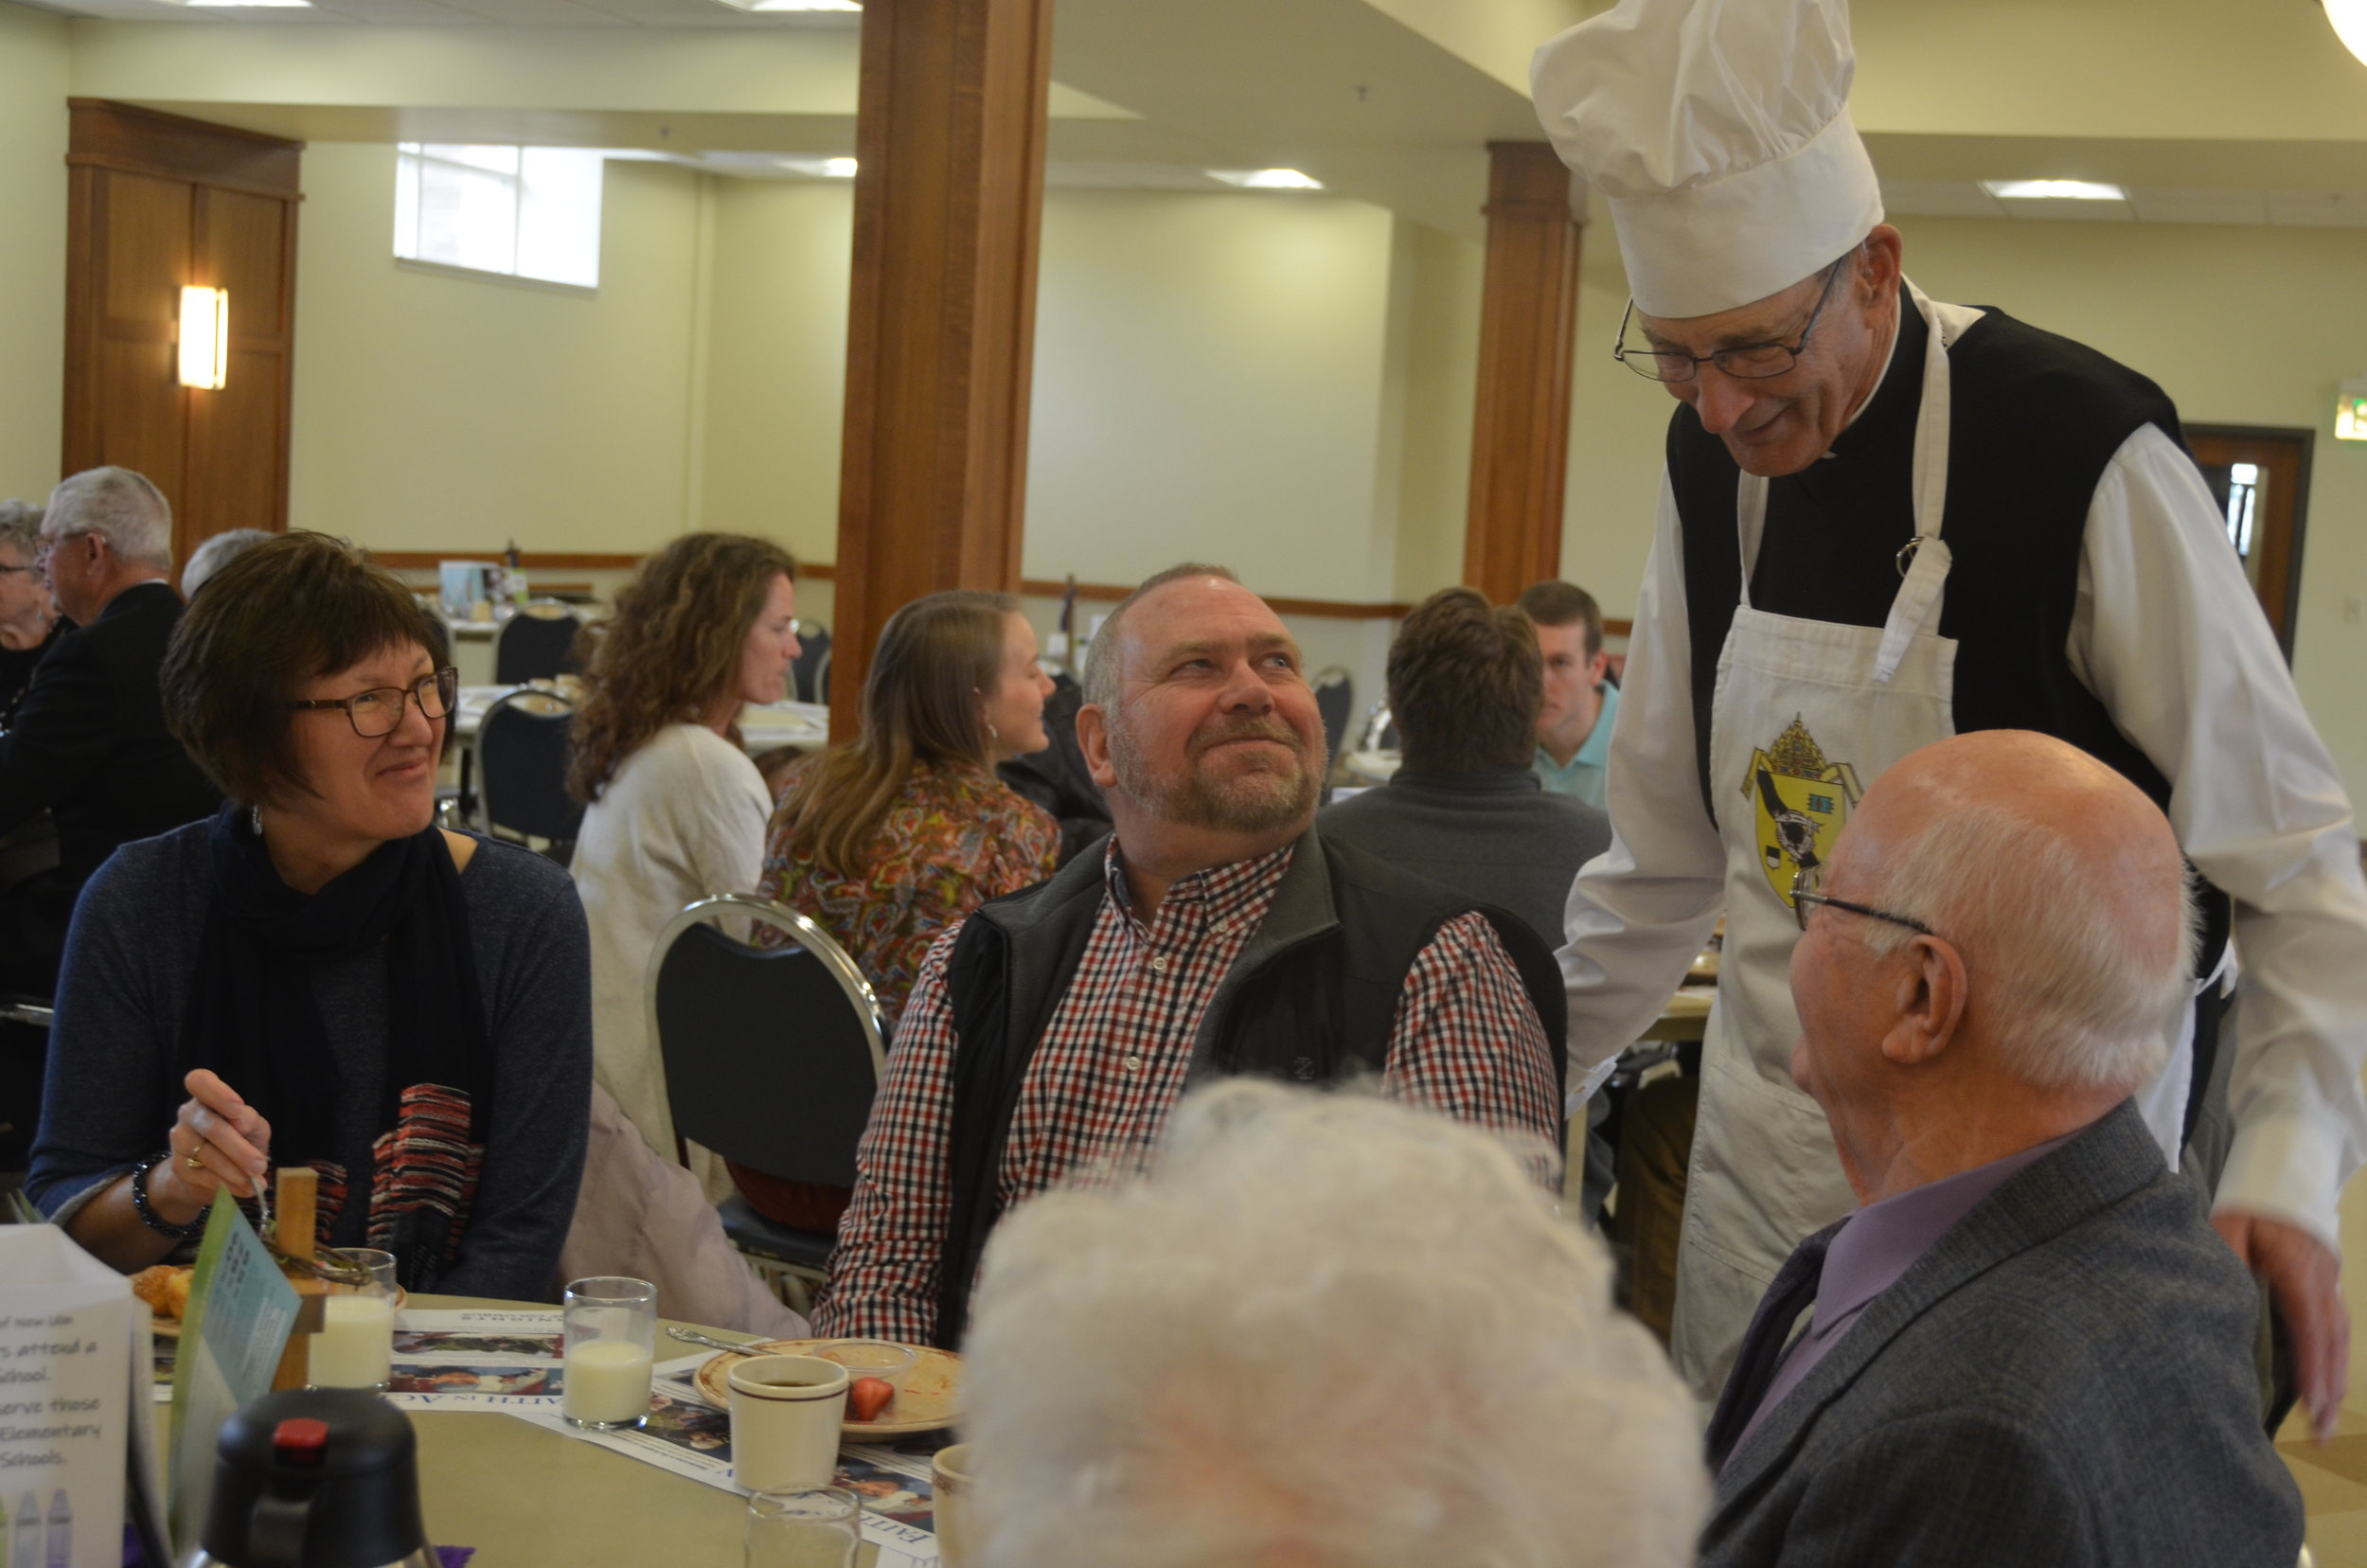 BRUNCH WITH THE BISHOP! - People gathered for brunch on Sunday, March 24 following Mass at the Church of the Holy Redeemer in Marshall for the 5th annual Diocese of New Ulm Brunch with the Bishop. All proceeds from the event support Catholic schools in the diocese.